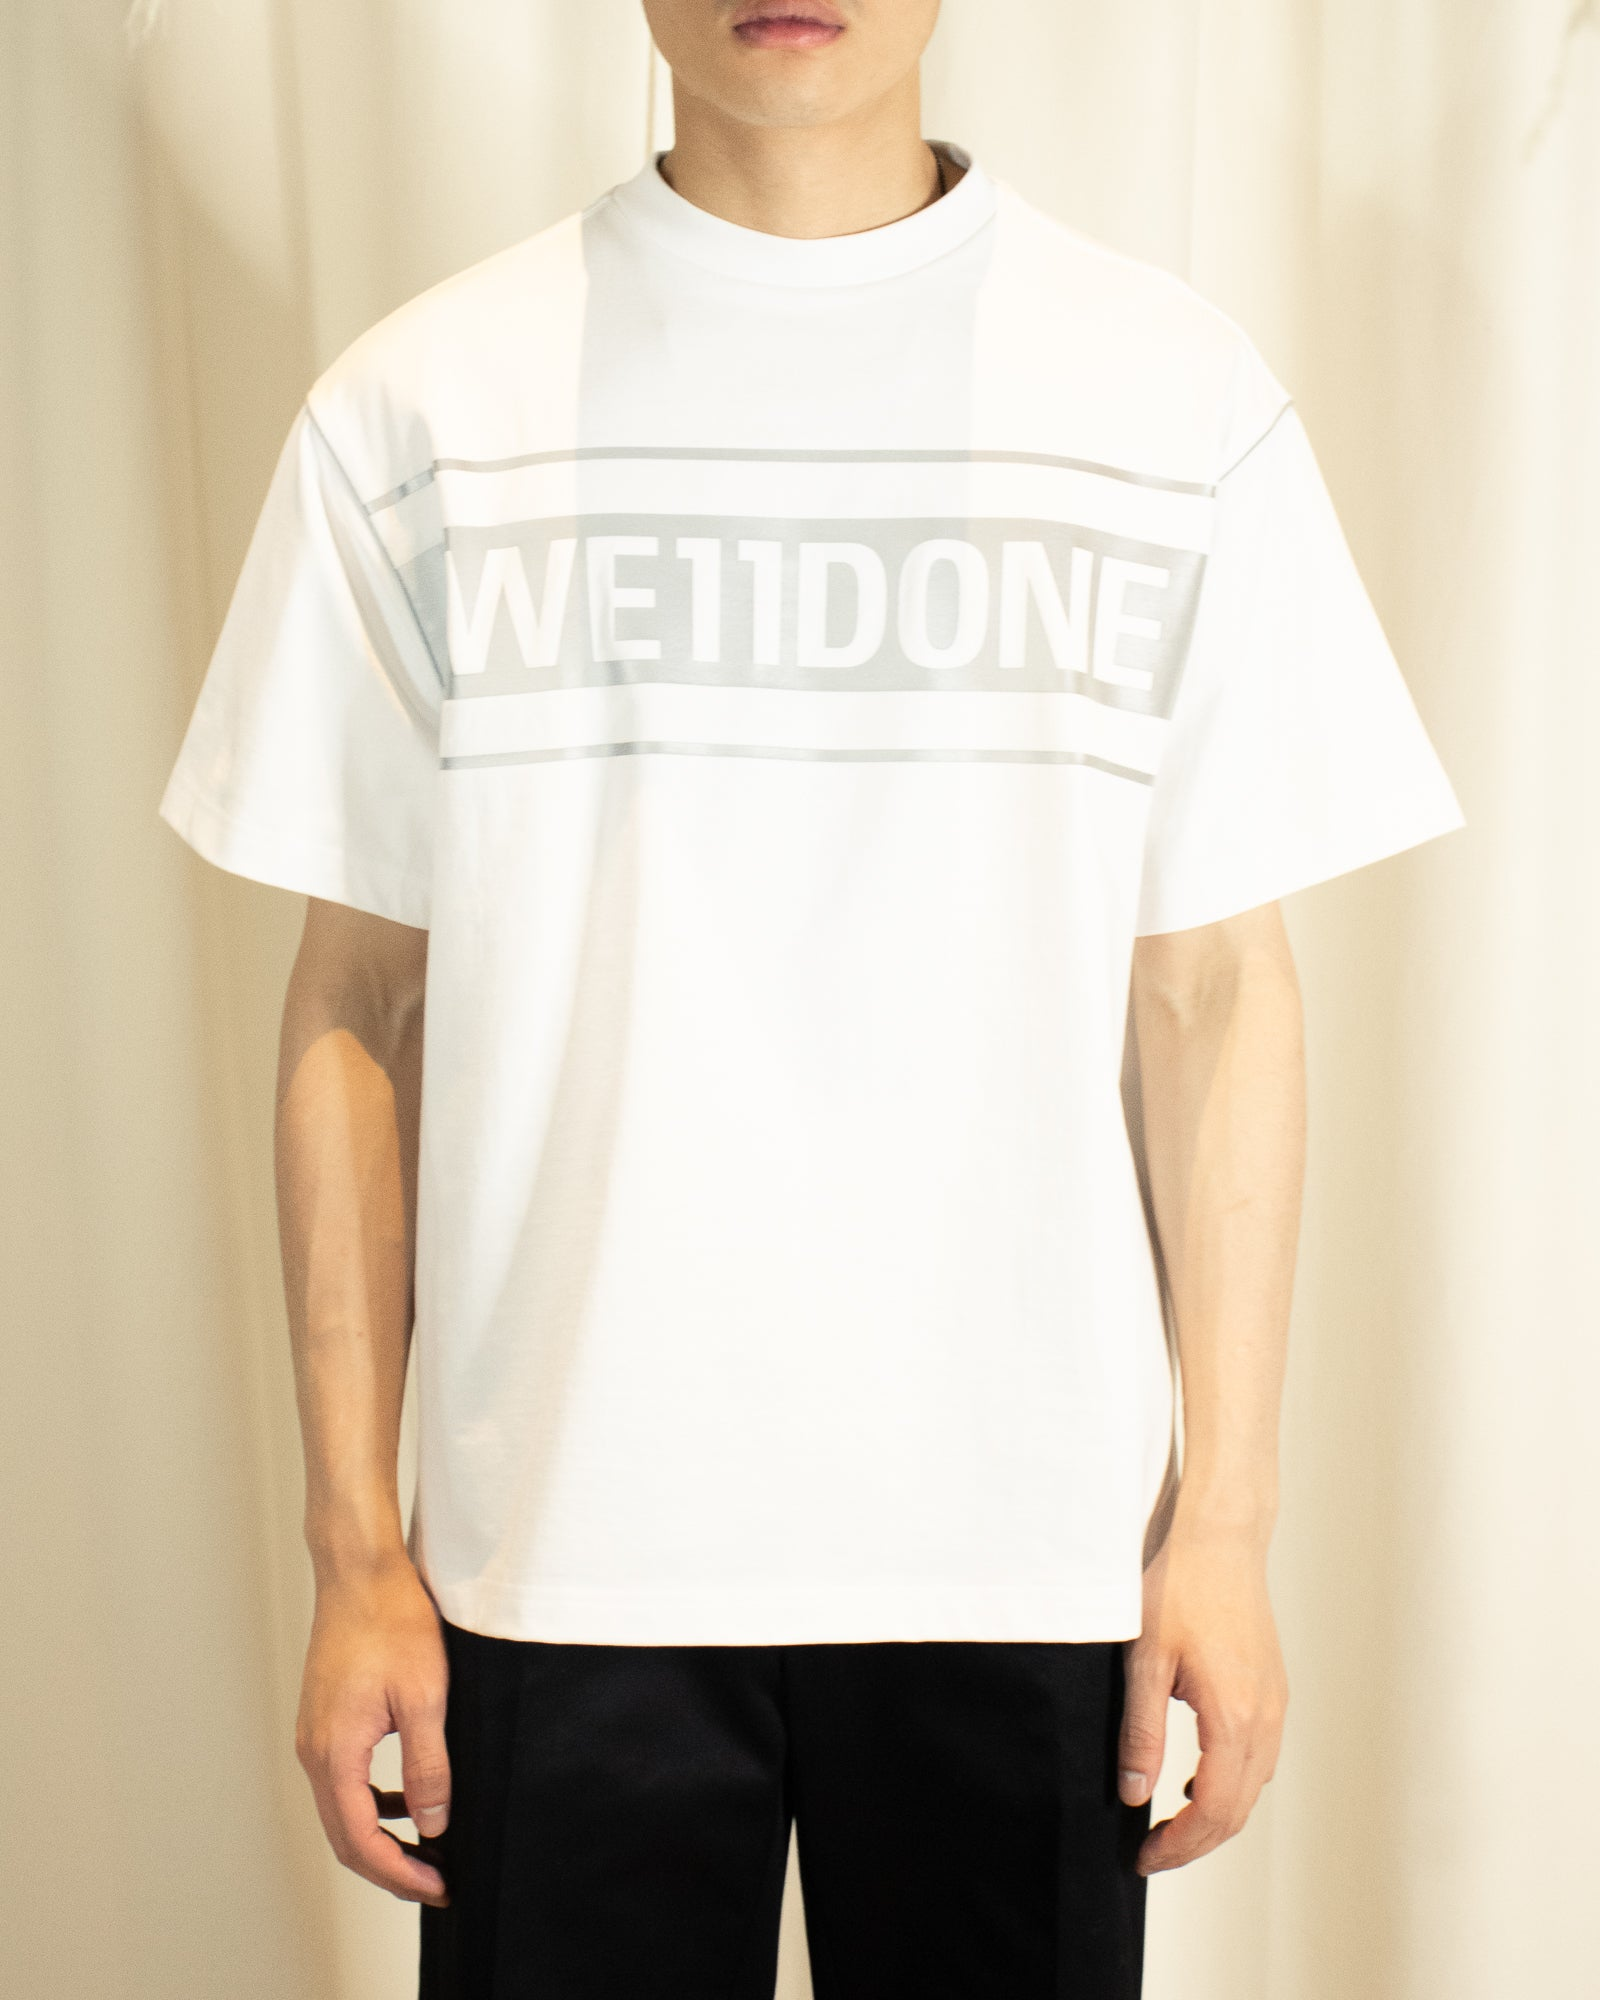 WE11DONE REFLECTIVE LOGO TEE